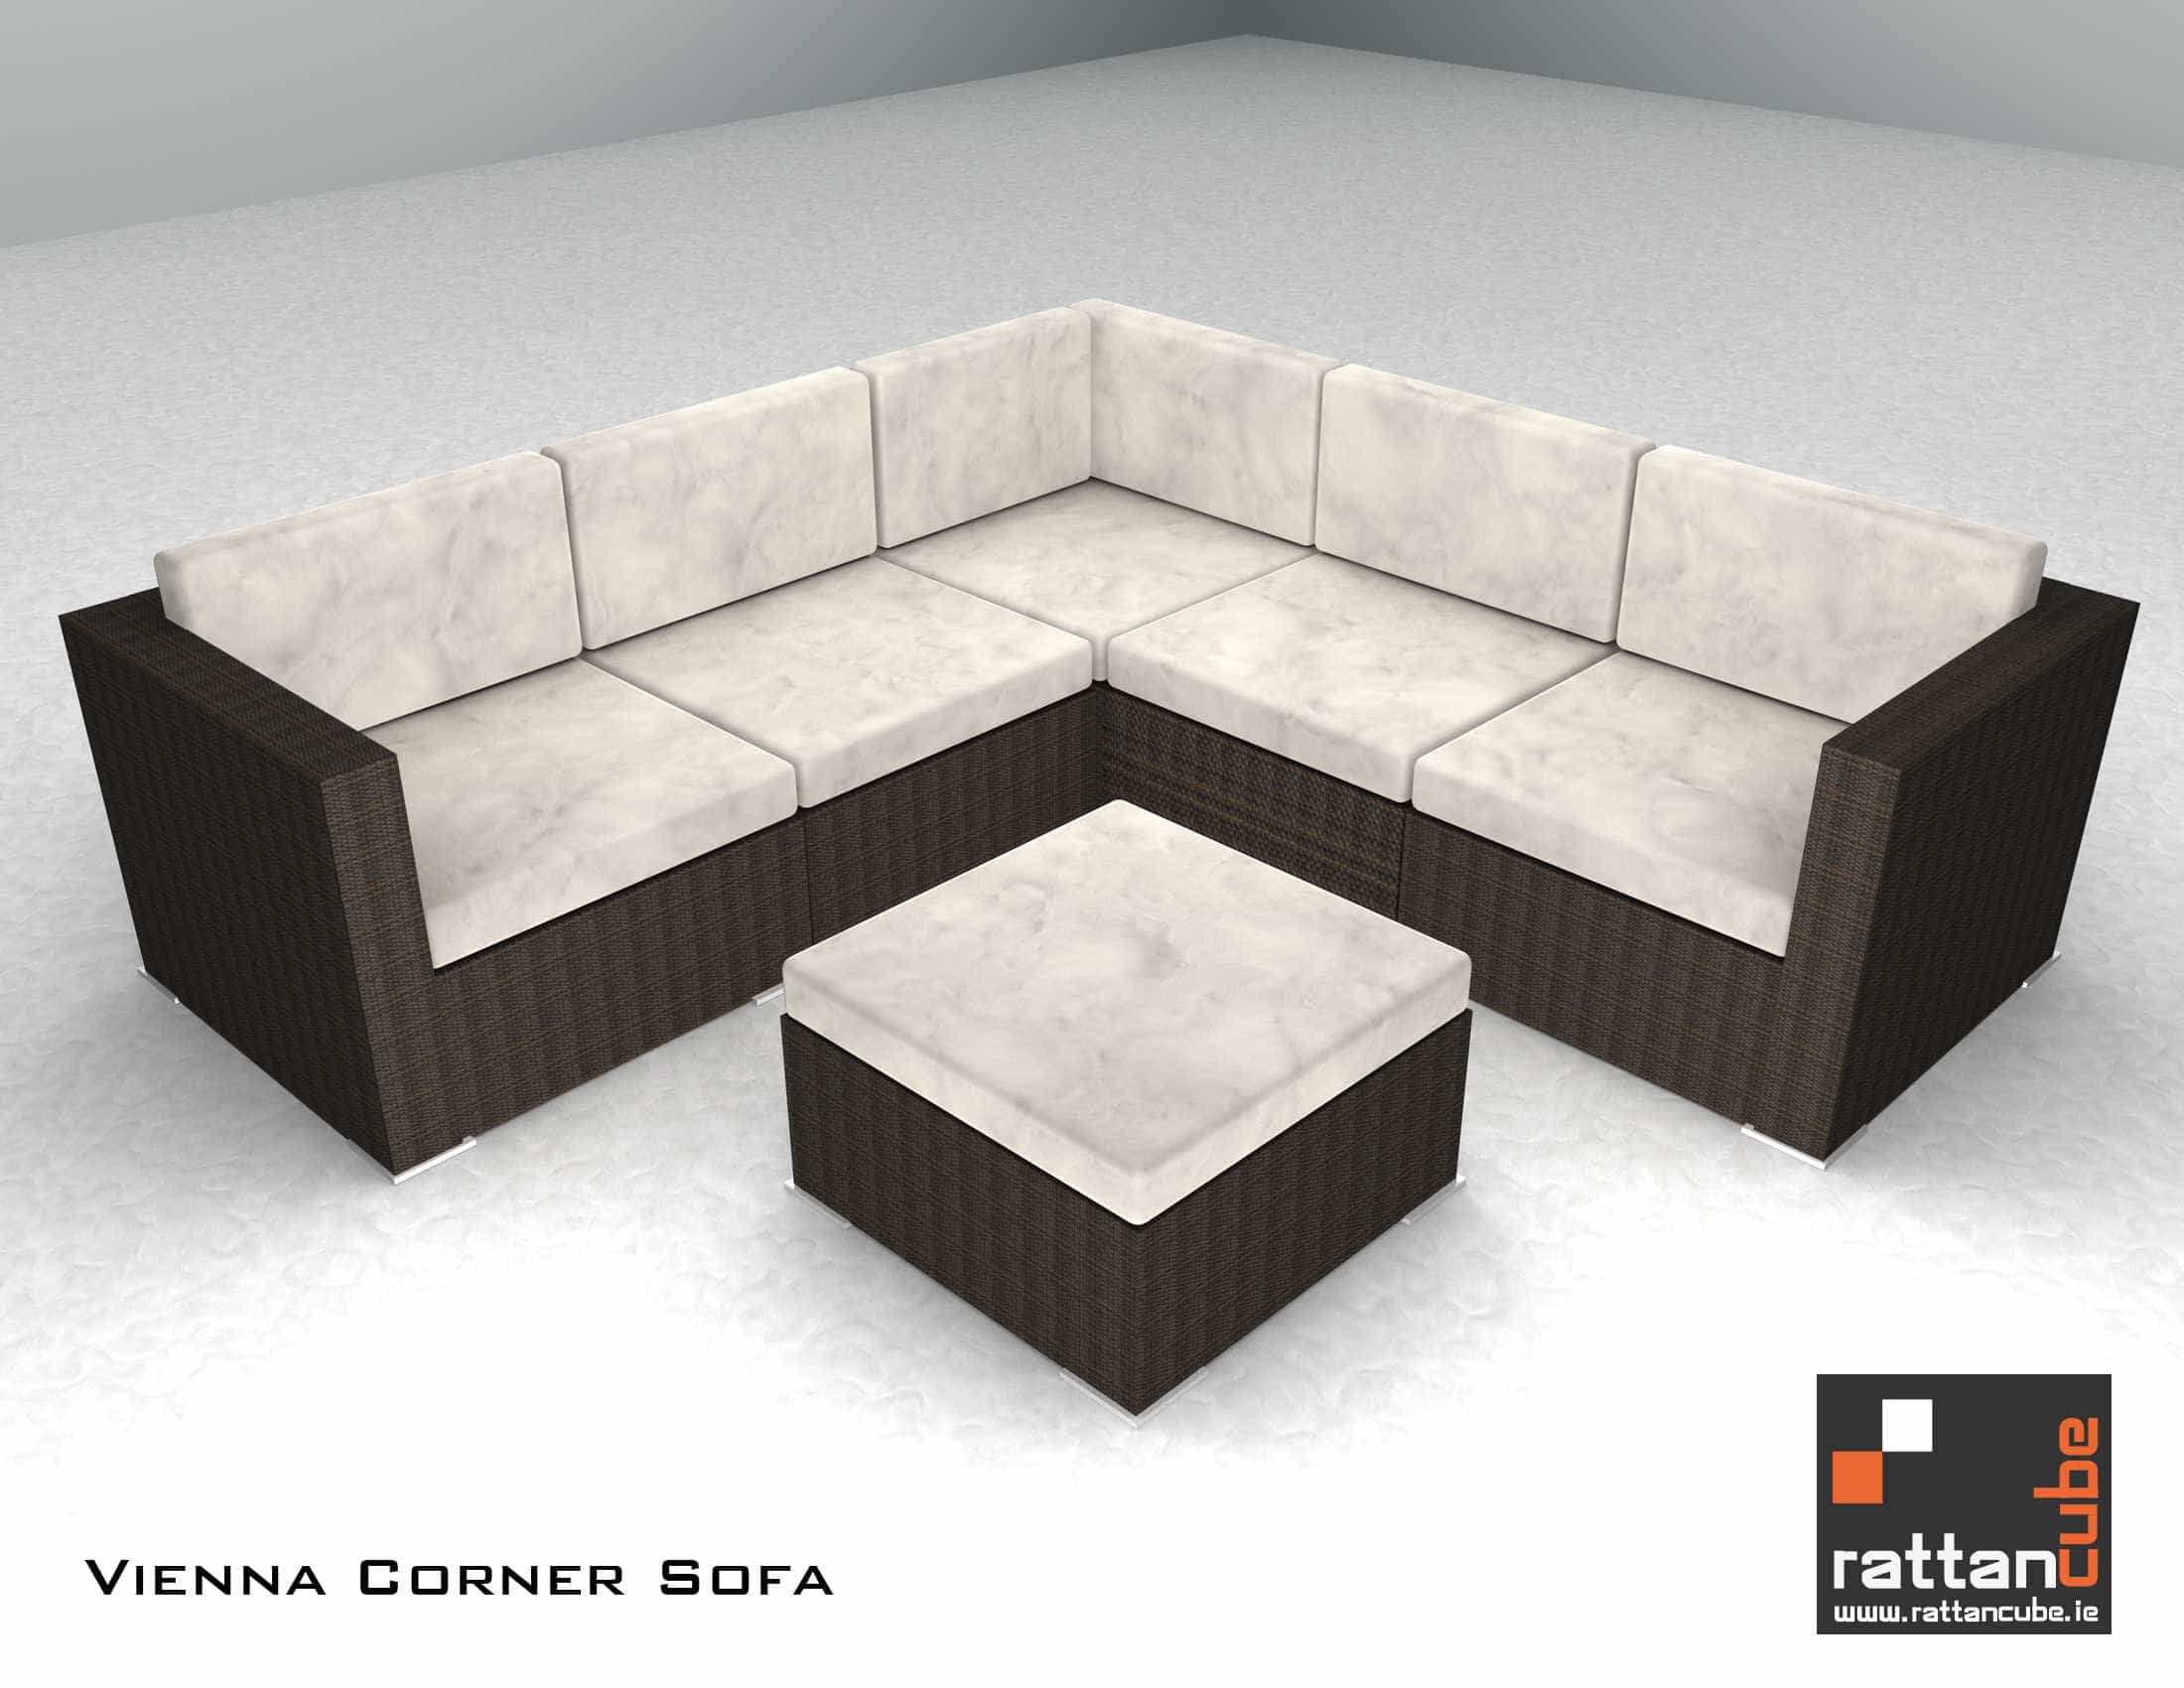 Rattan Corner Sofa Ireland Vienna Corner Sofa Garden Furniture Ireland Outdoor